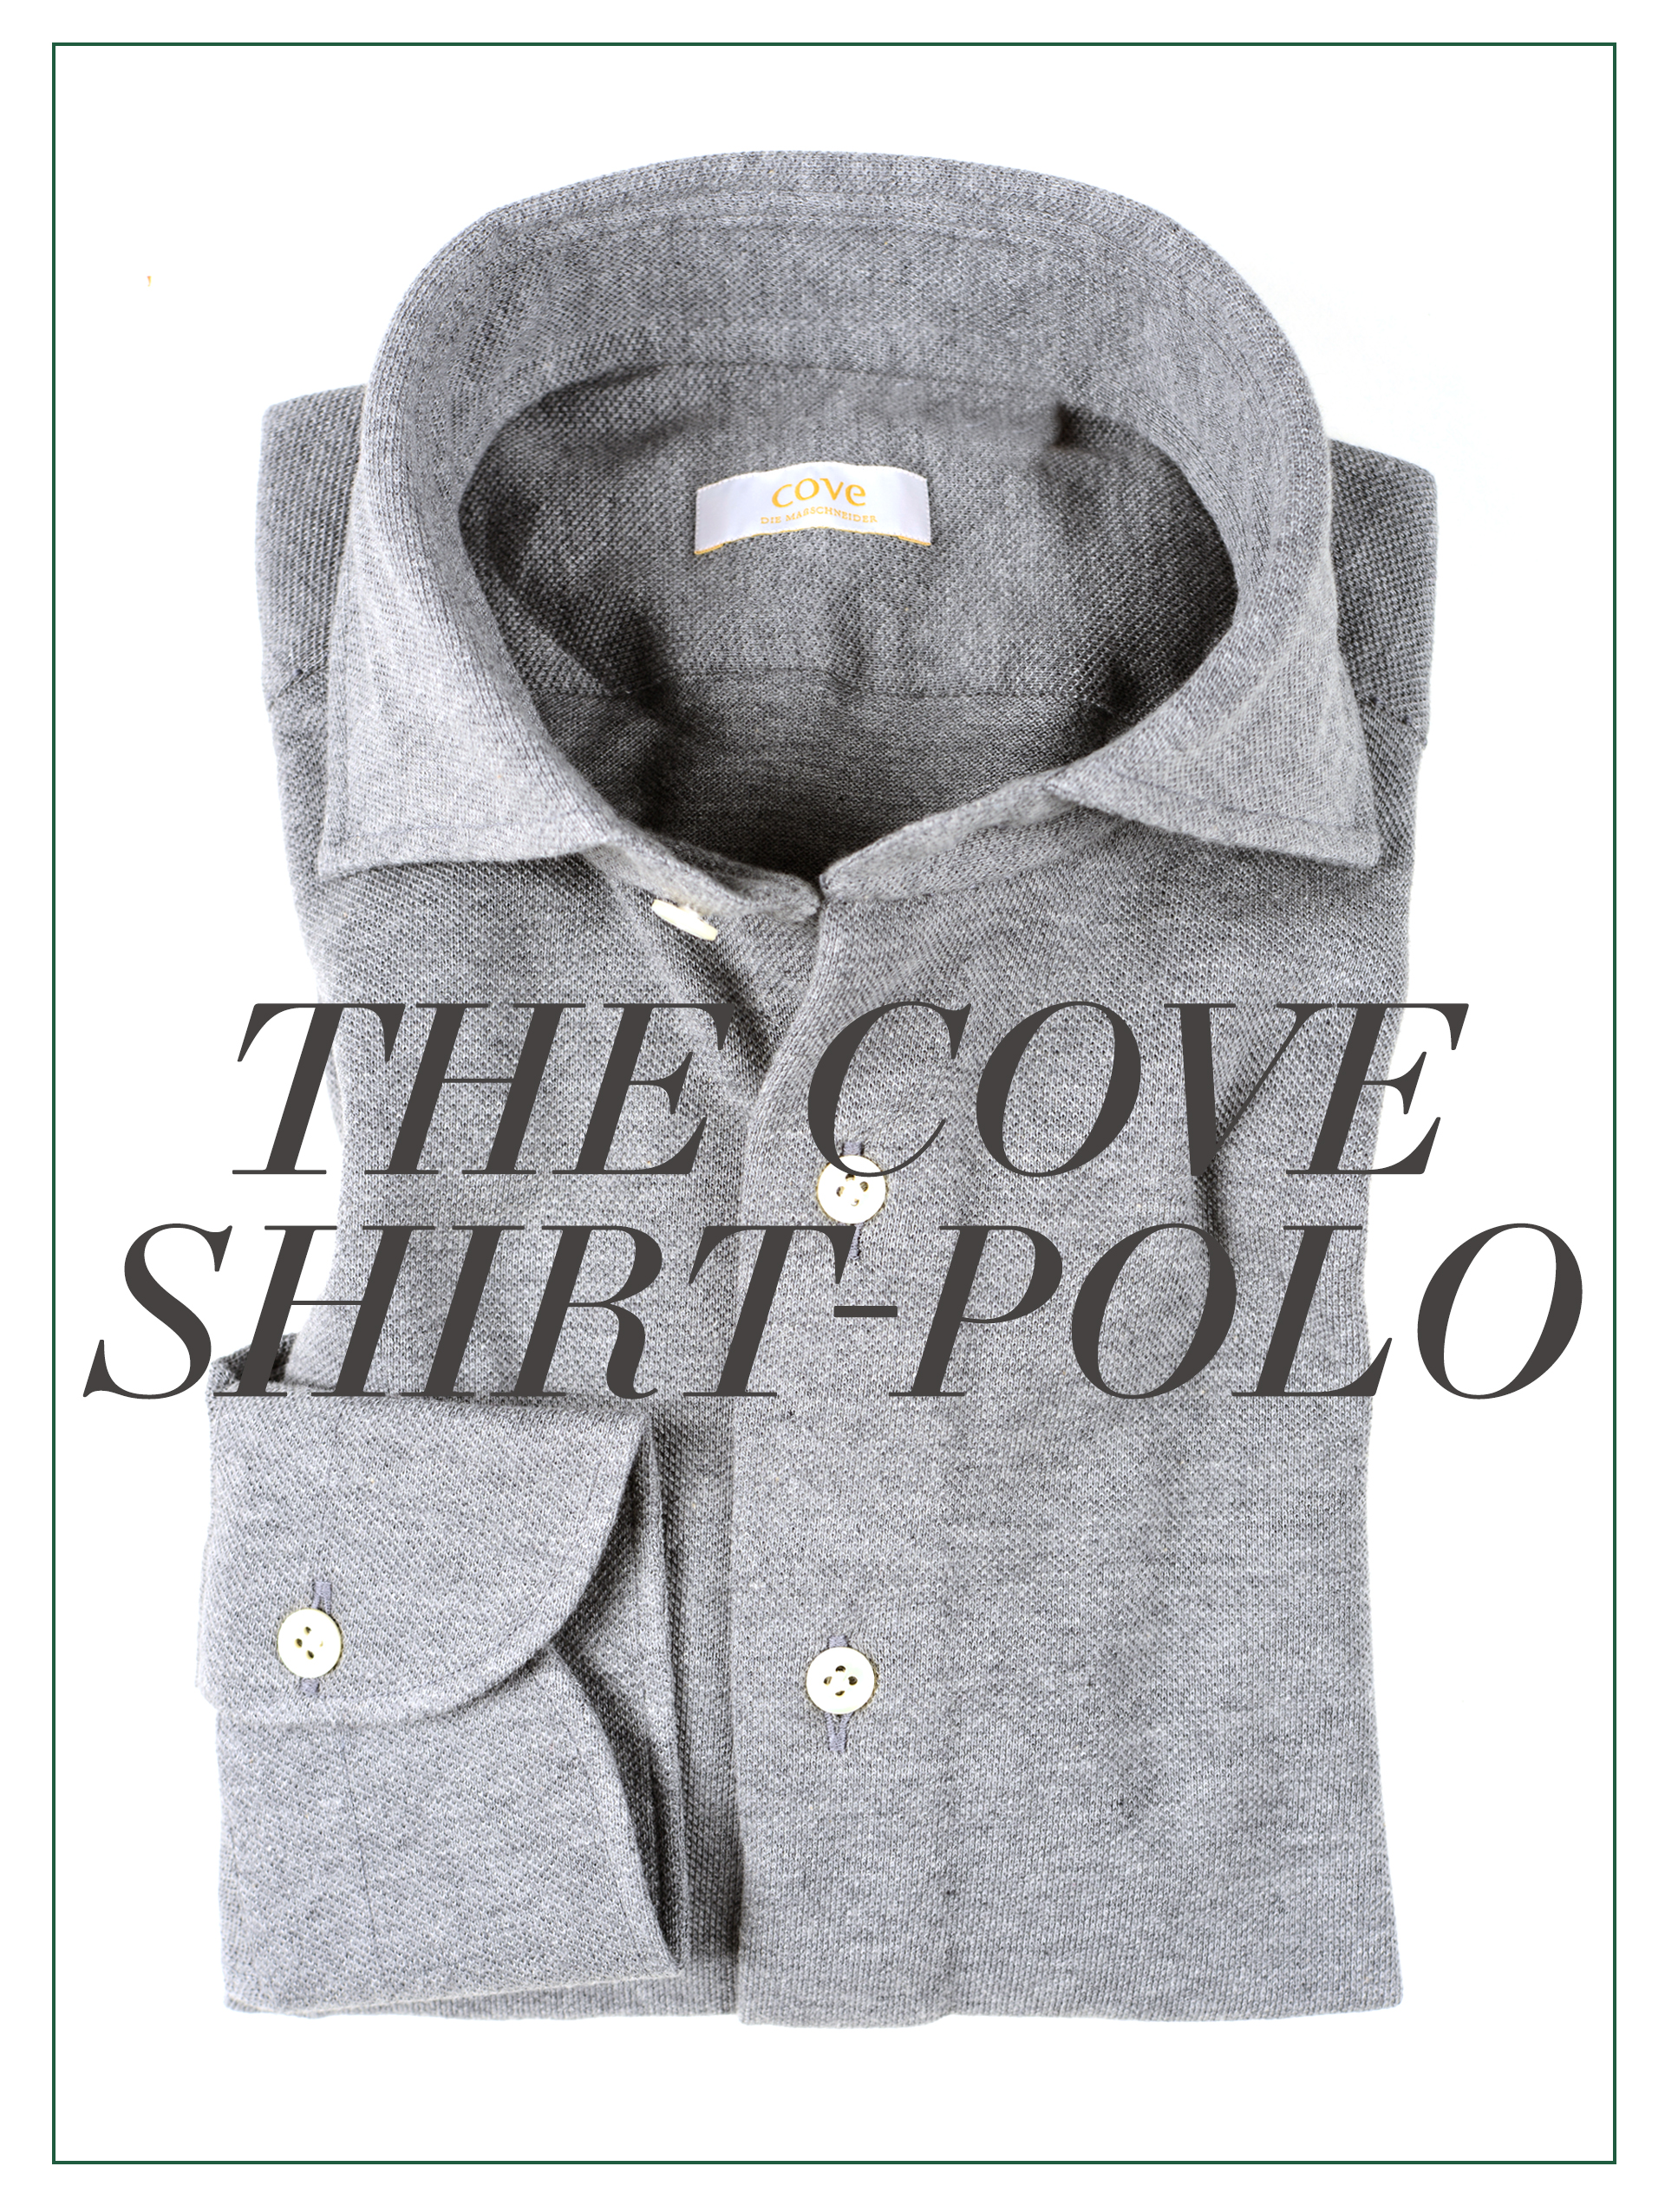 Das Cove Shirt-Polo